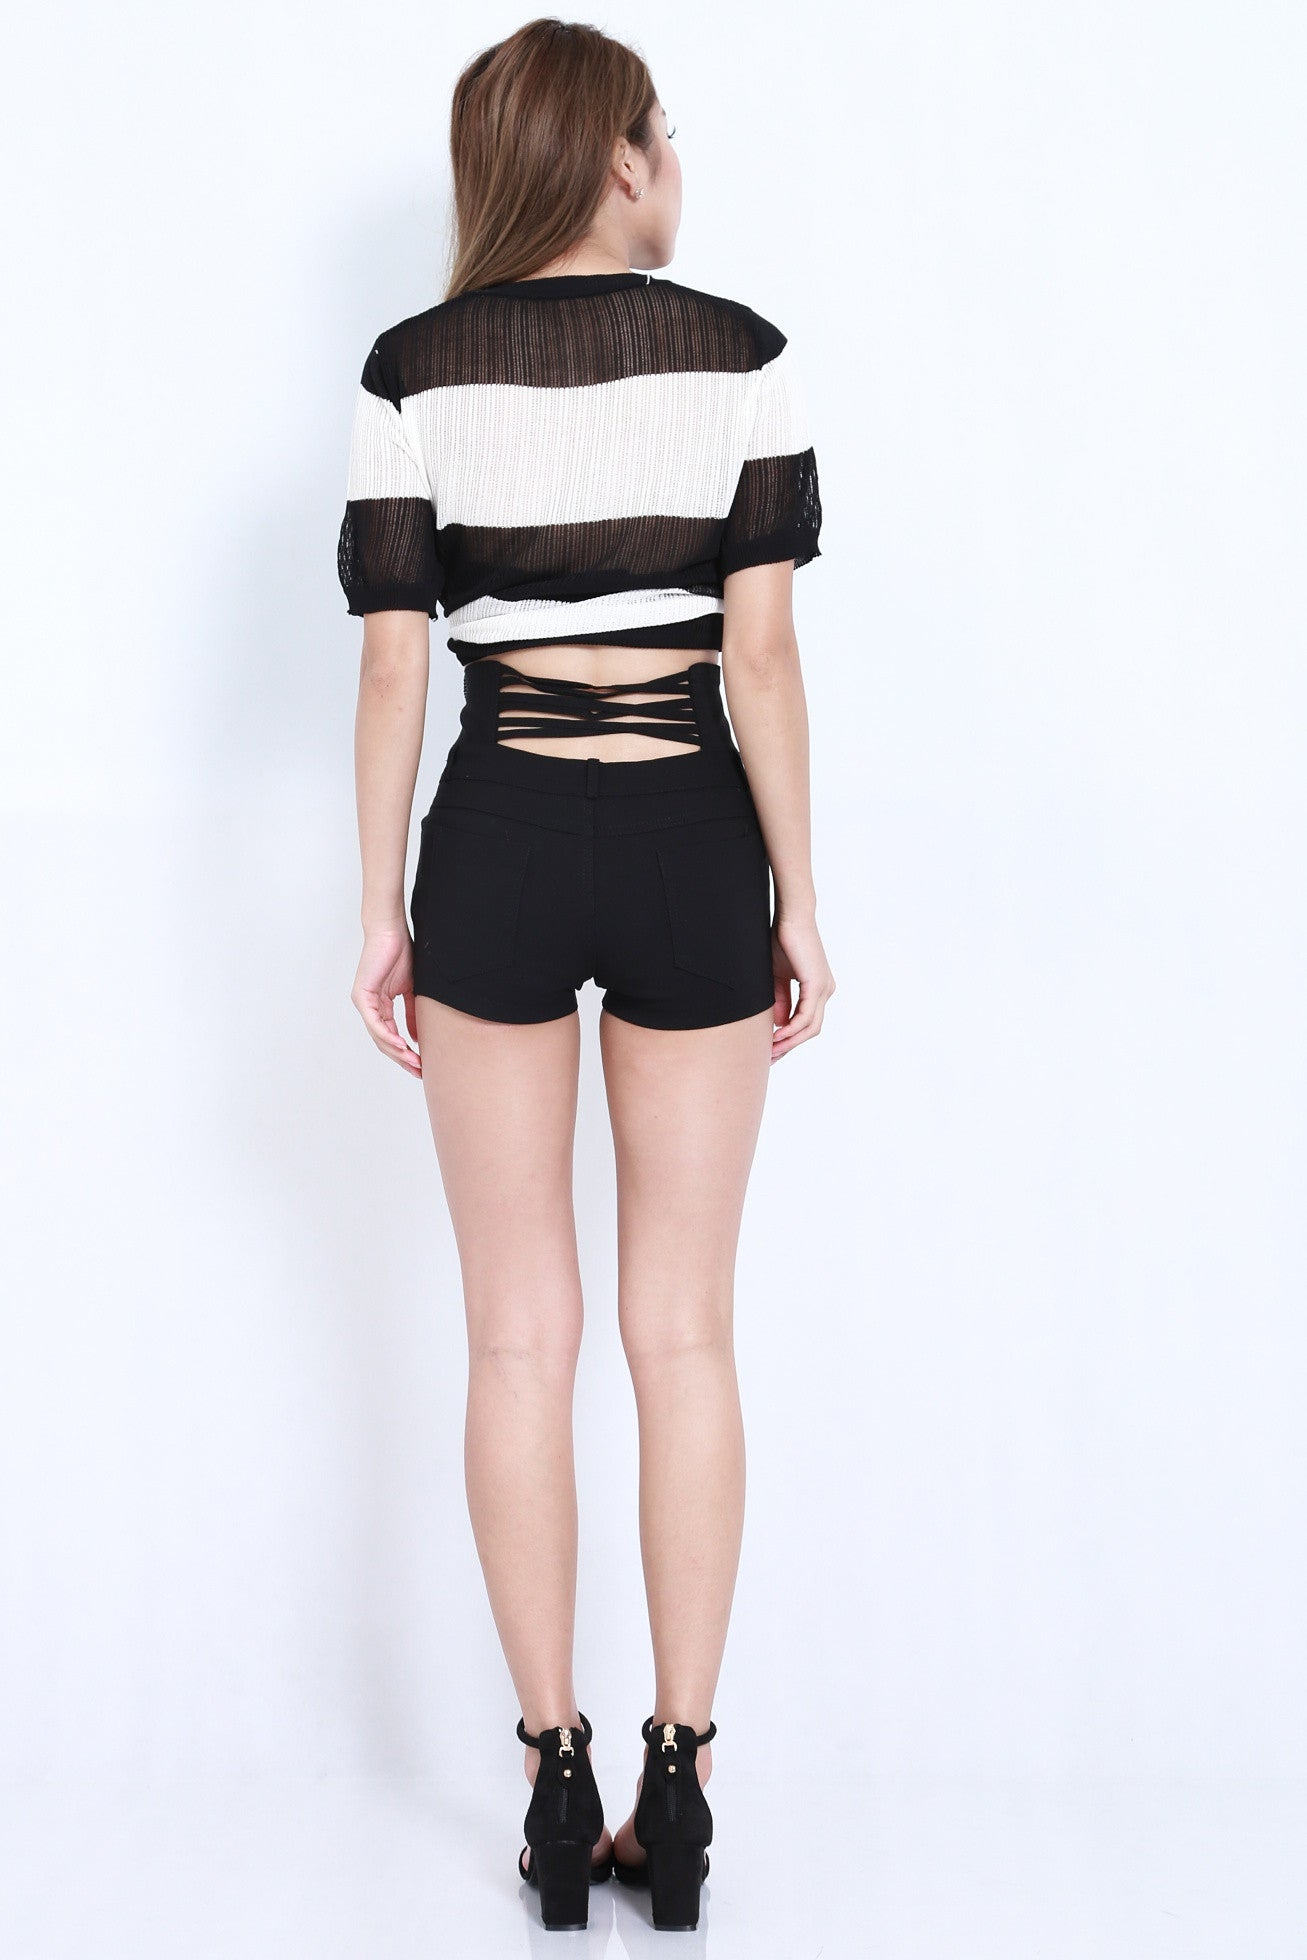 MULTI STRAPS HIGH WAISTED SHORTS IN BLACK - TOPAZETTE